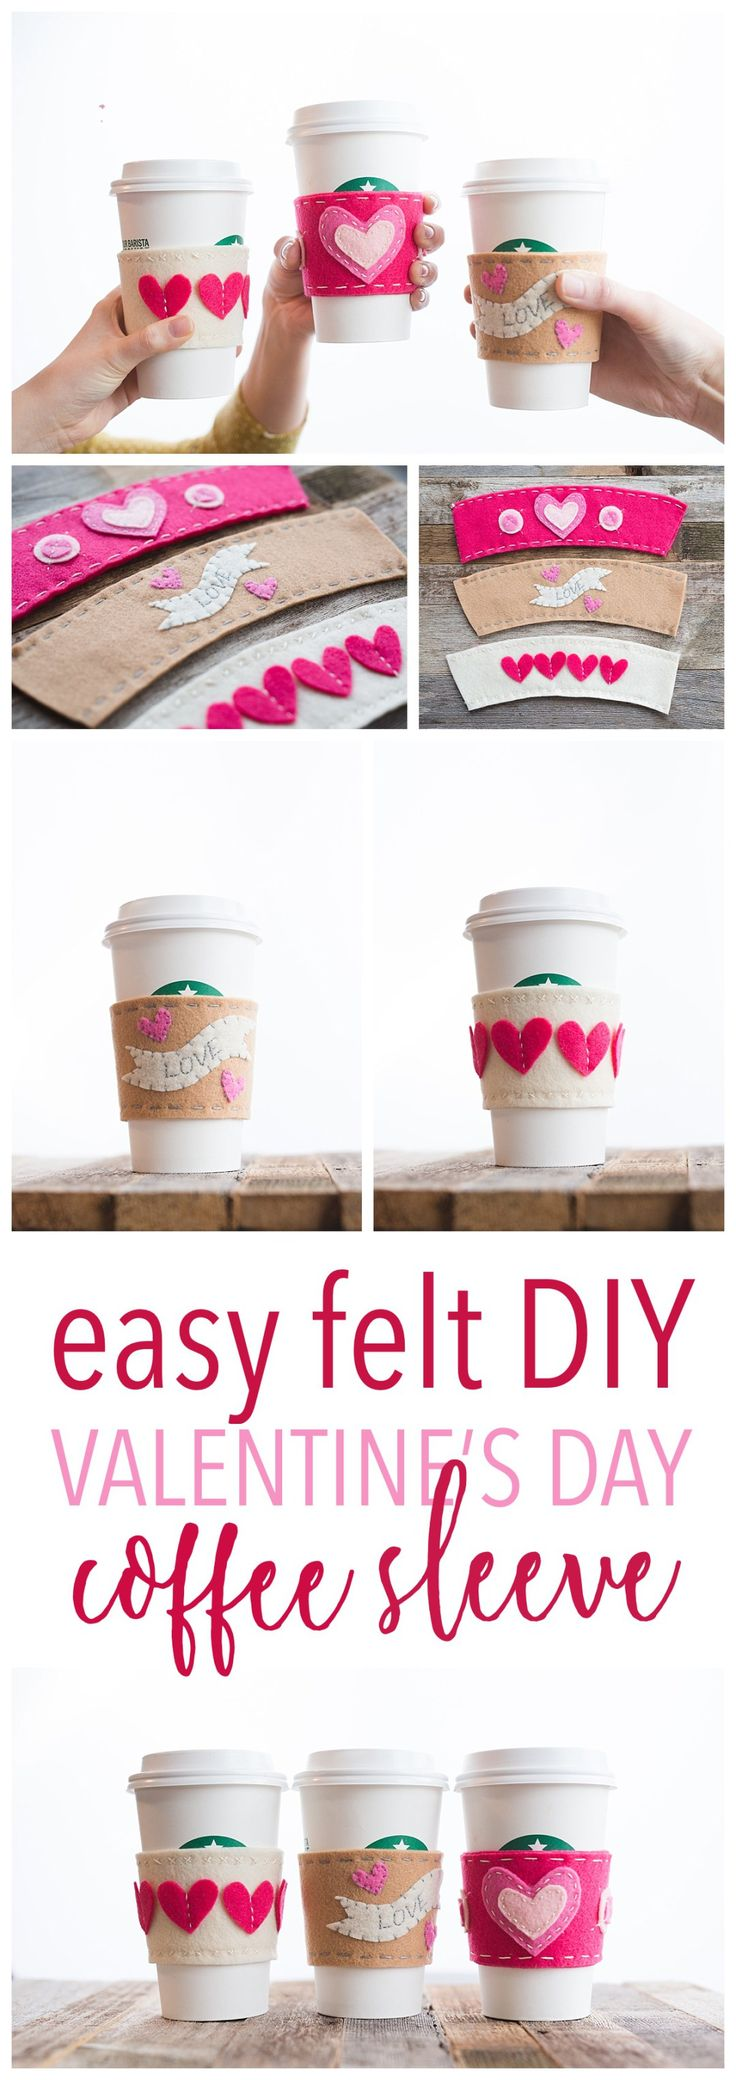 What a super easy handmade Valentine's Day gift idea! Free printable patterns are included on www.sixcleversisters.com. Go check it out!